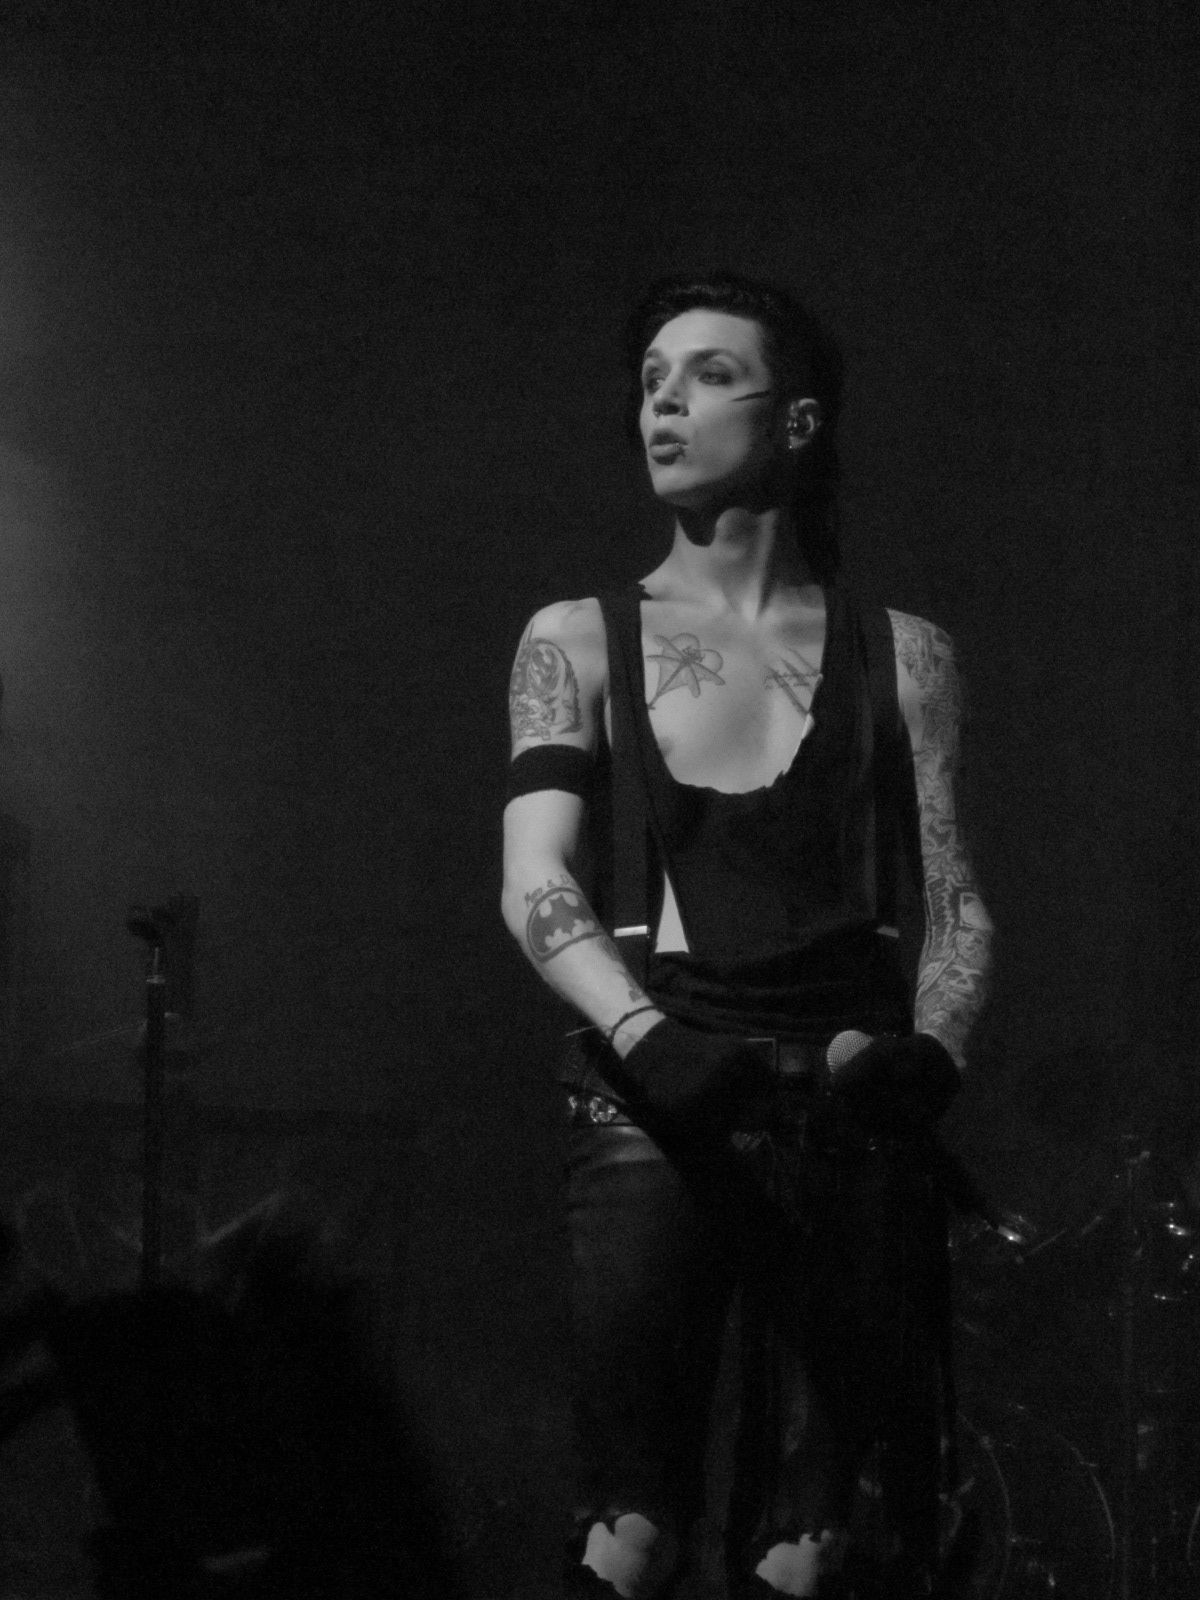 Andy Biersack, Black Veil Brides (2013)